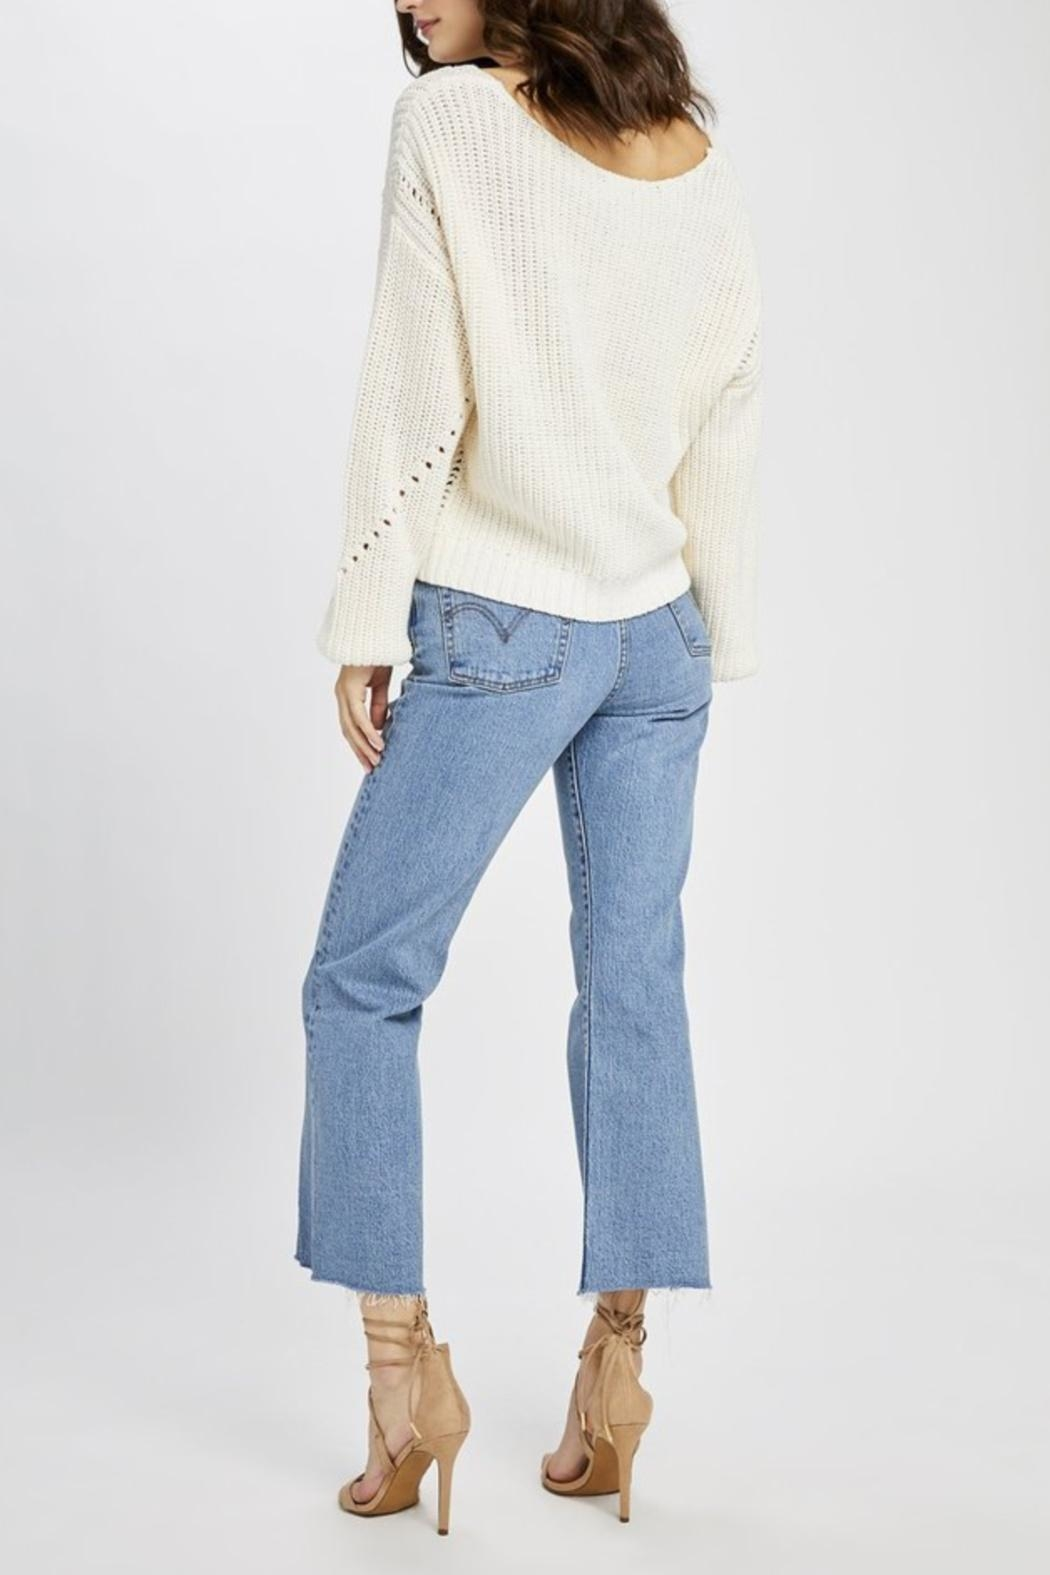 Gentle Fawn Open Weave Sweater - Back Cropped Image